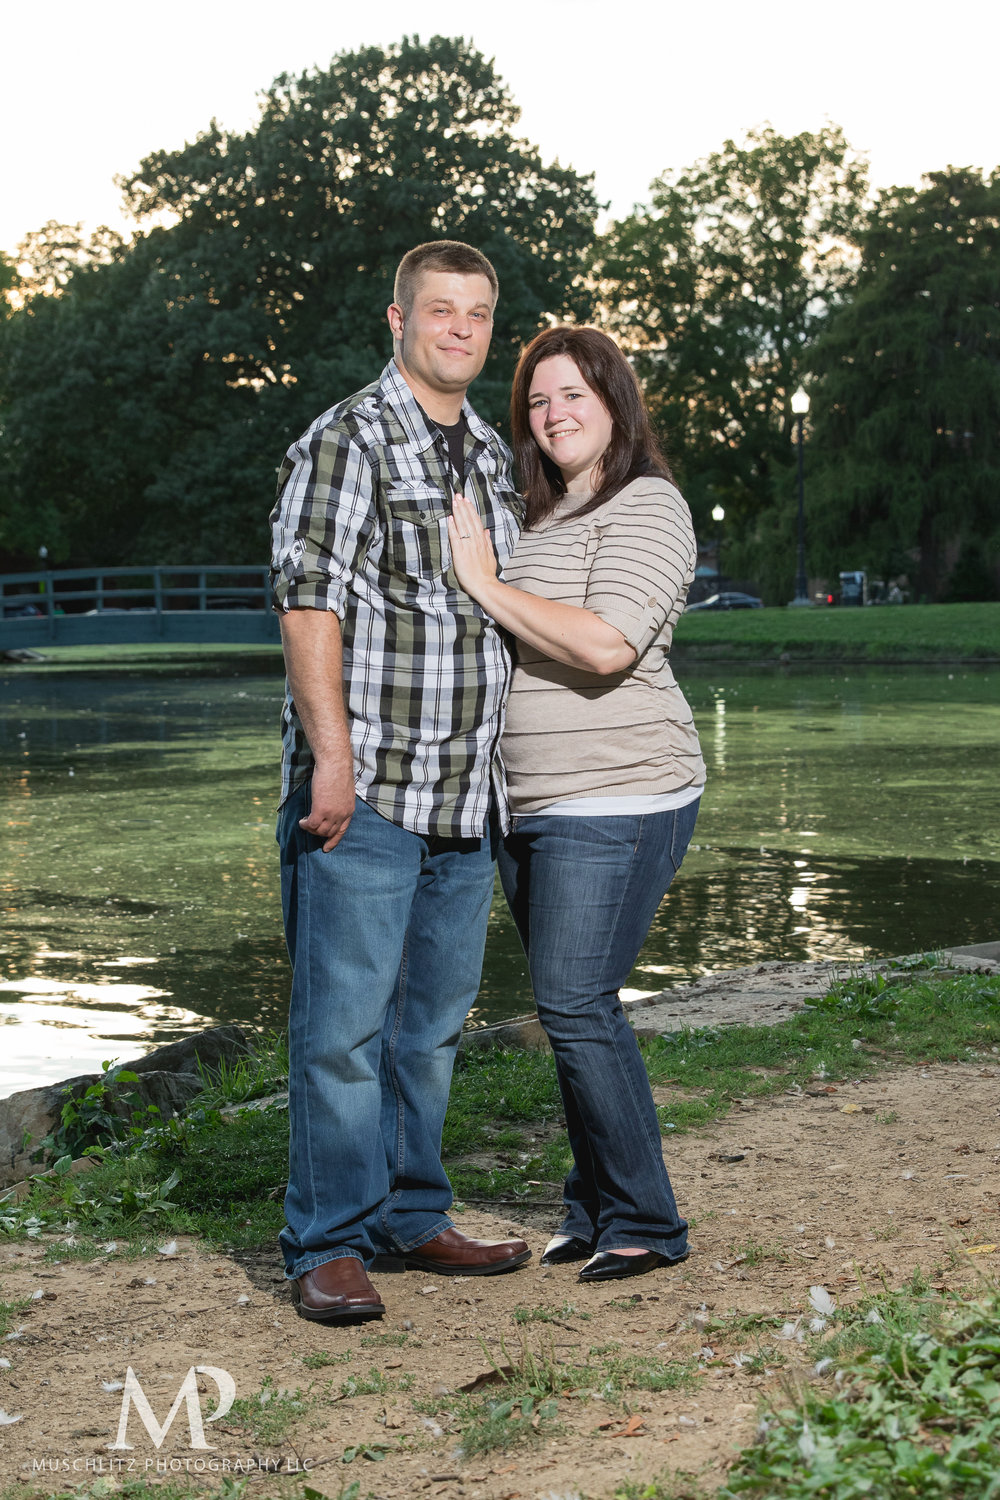 schiller-park-german-village-columbus-ohio-engagement-portrait-session-muschlitz-photography-020.JPG